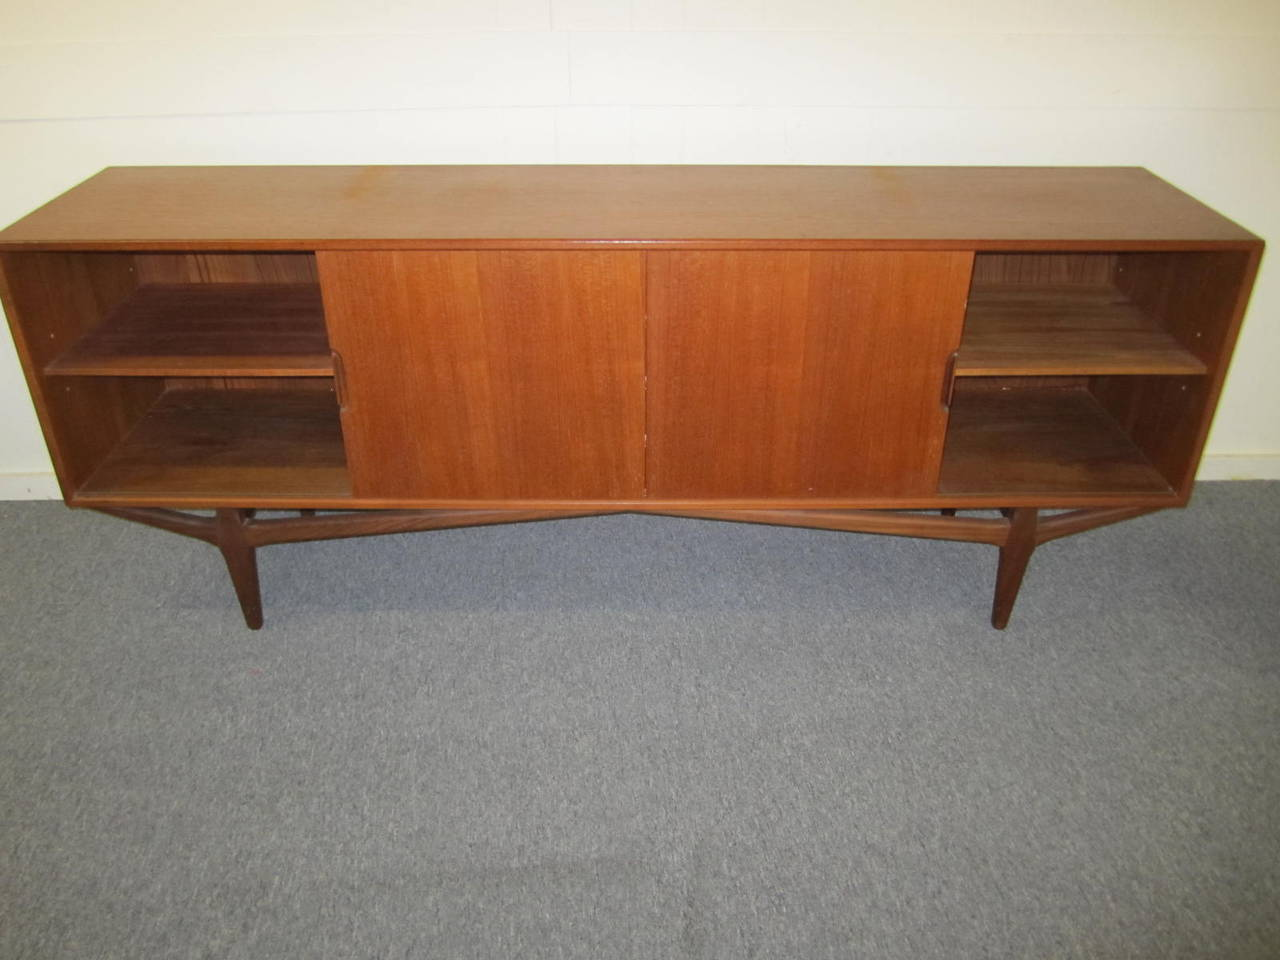 Danish Credenza Hutch : Lovely teak danish credenza with floating hutch room divider